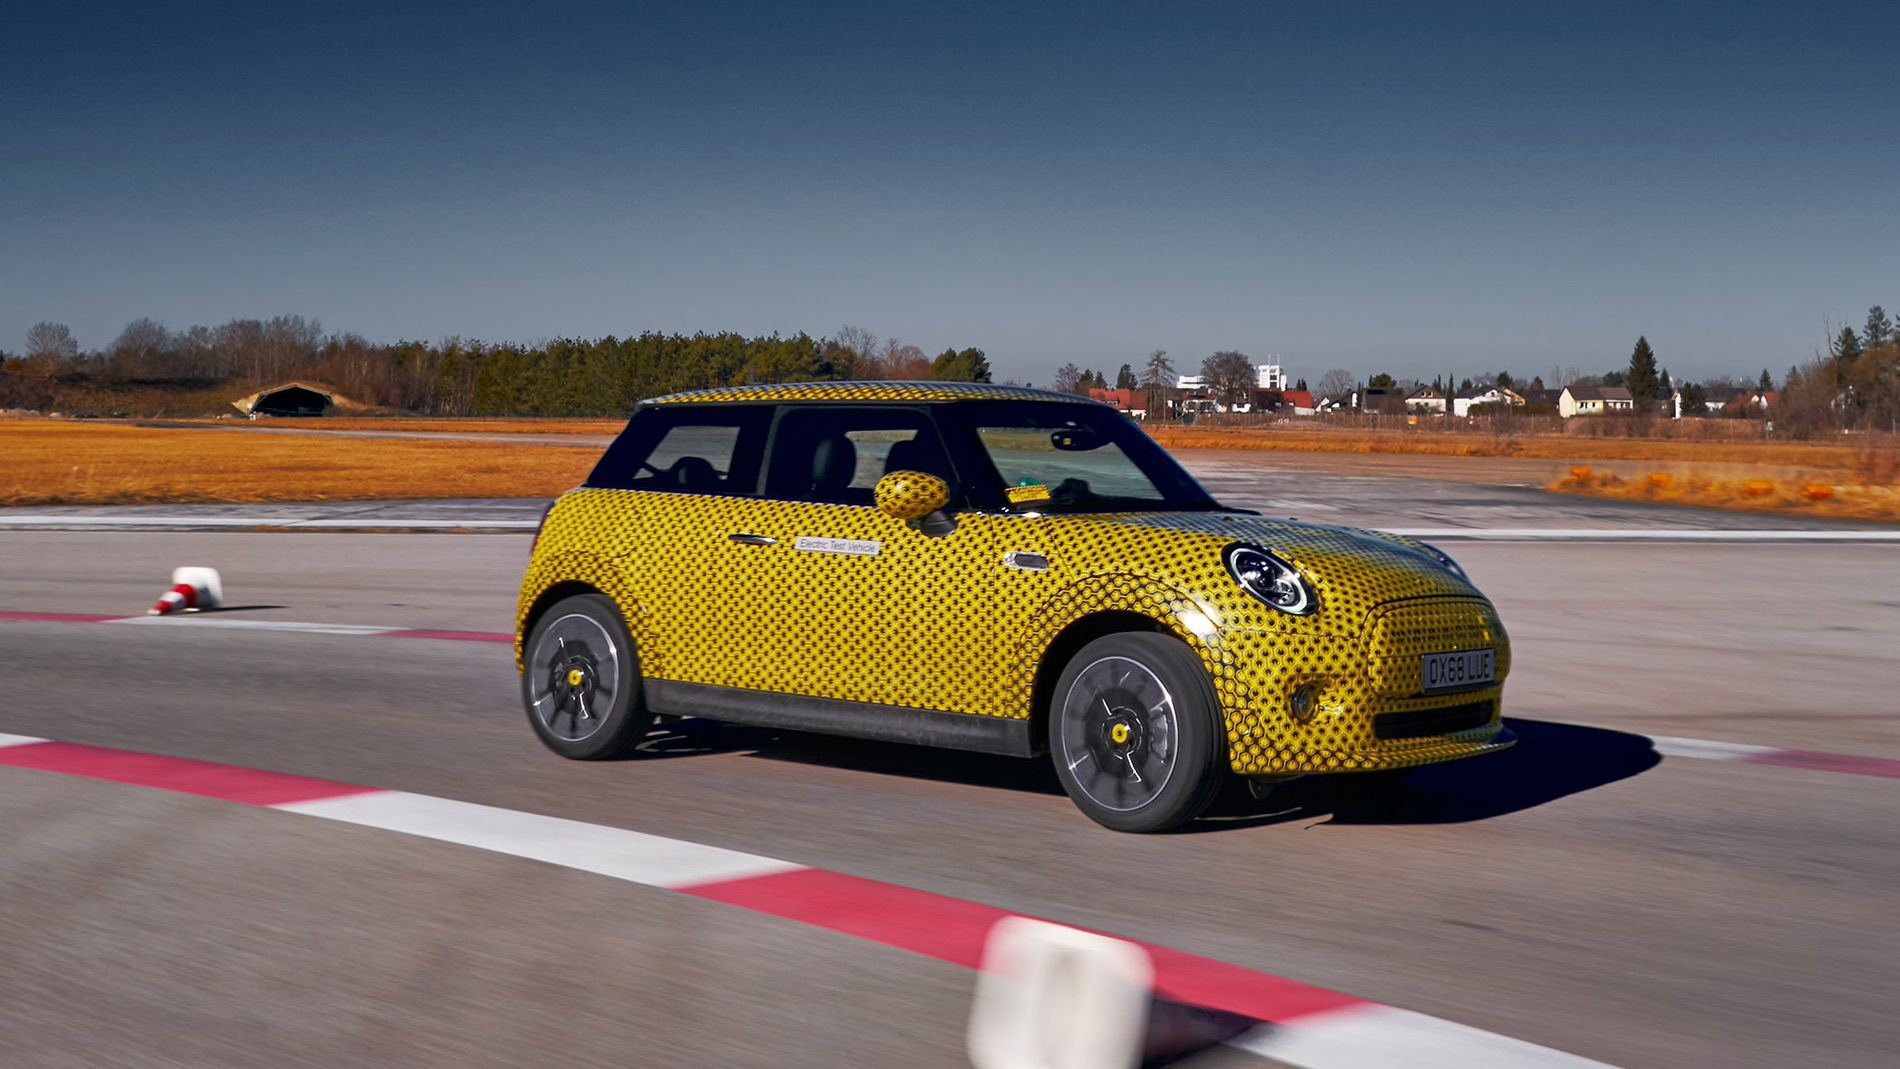 MINI Electric to be unveiled at the 2019 Frankfurt Auto Show